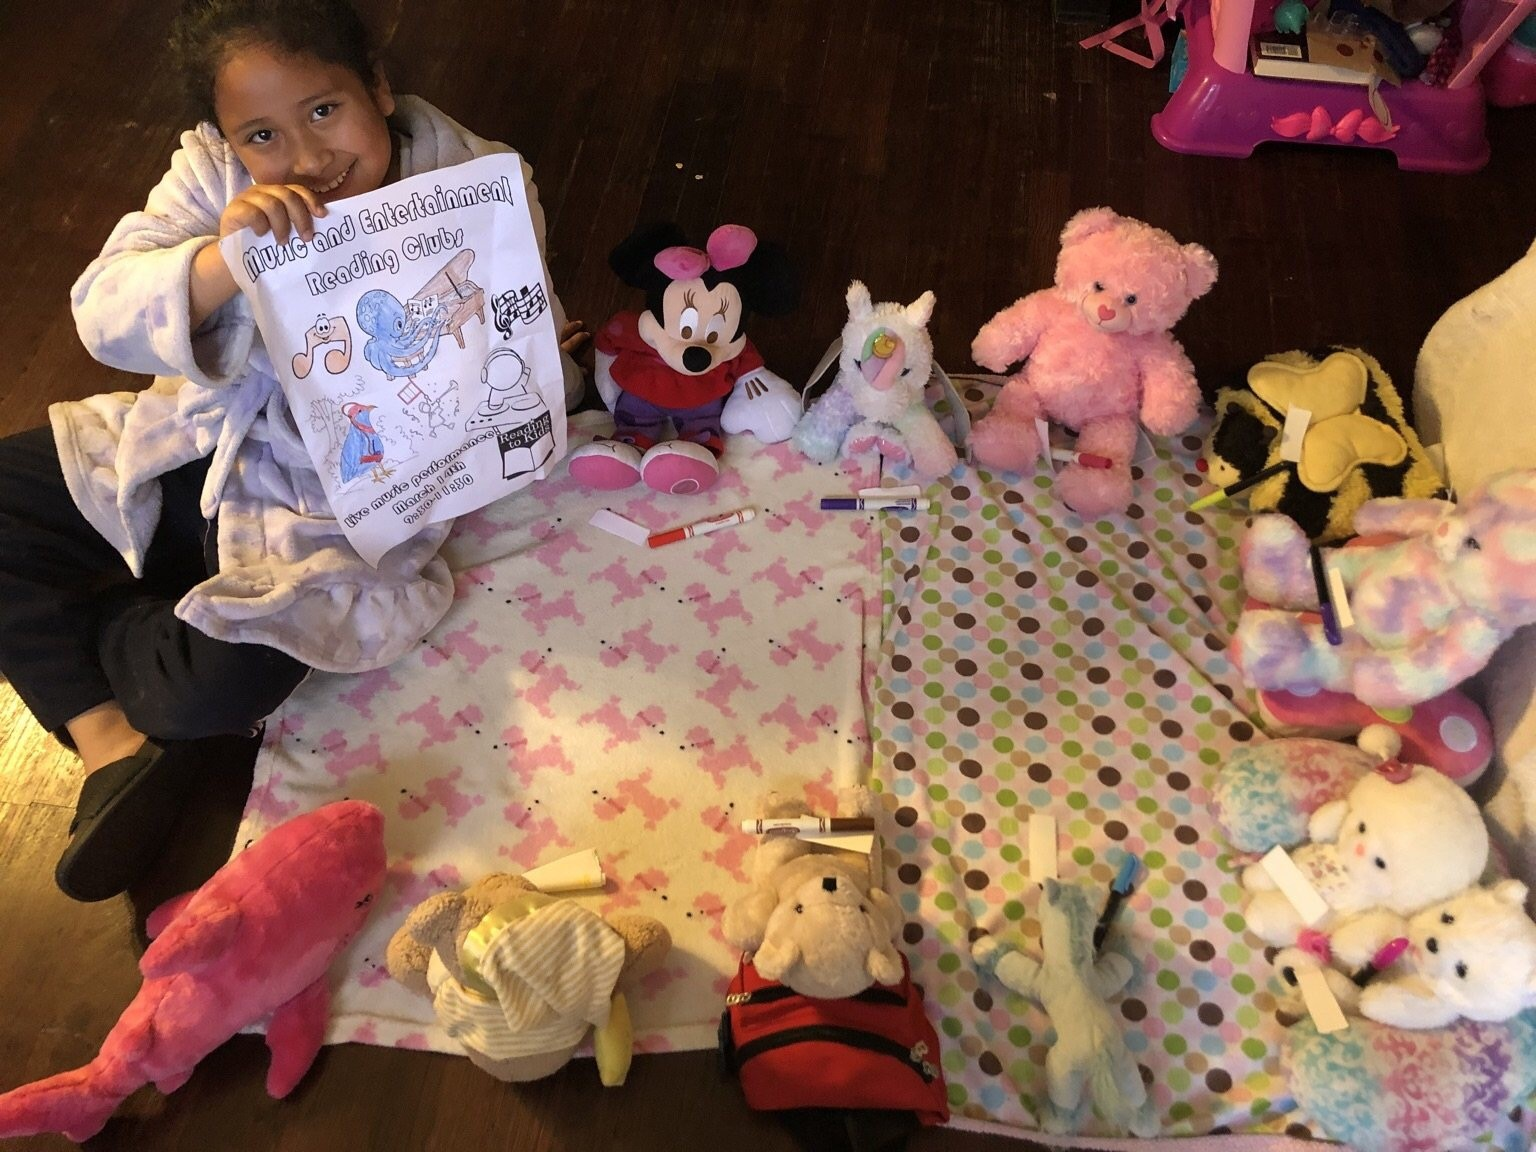 A girl shows her craft she created while holding a Reading to Kids reading club at home